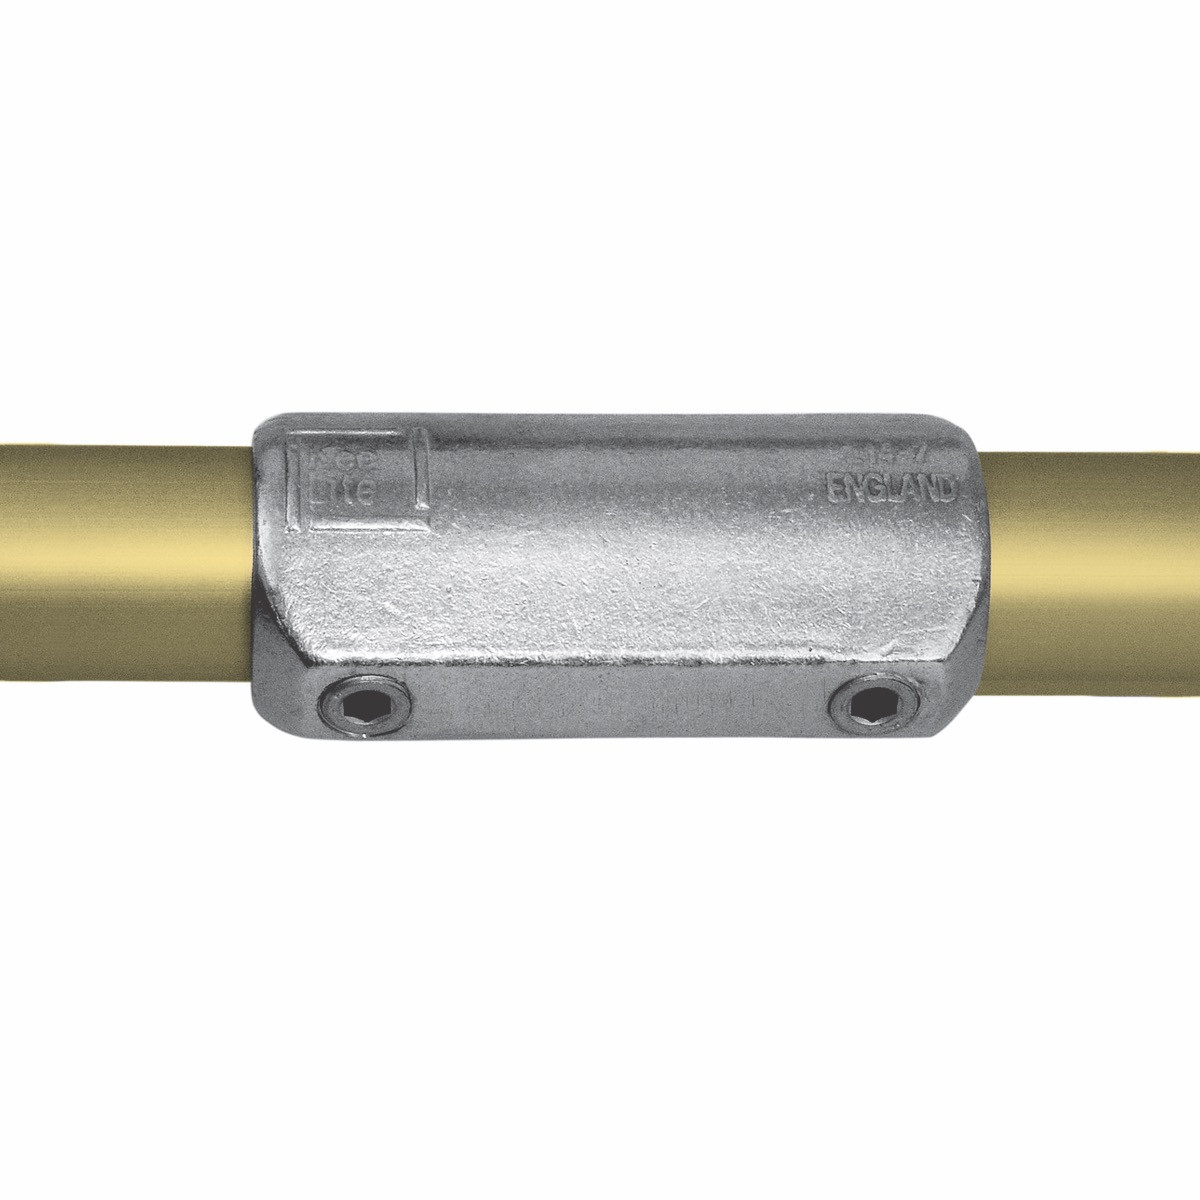 L14 - Straight Coupling